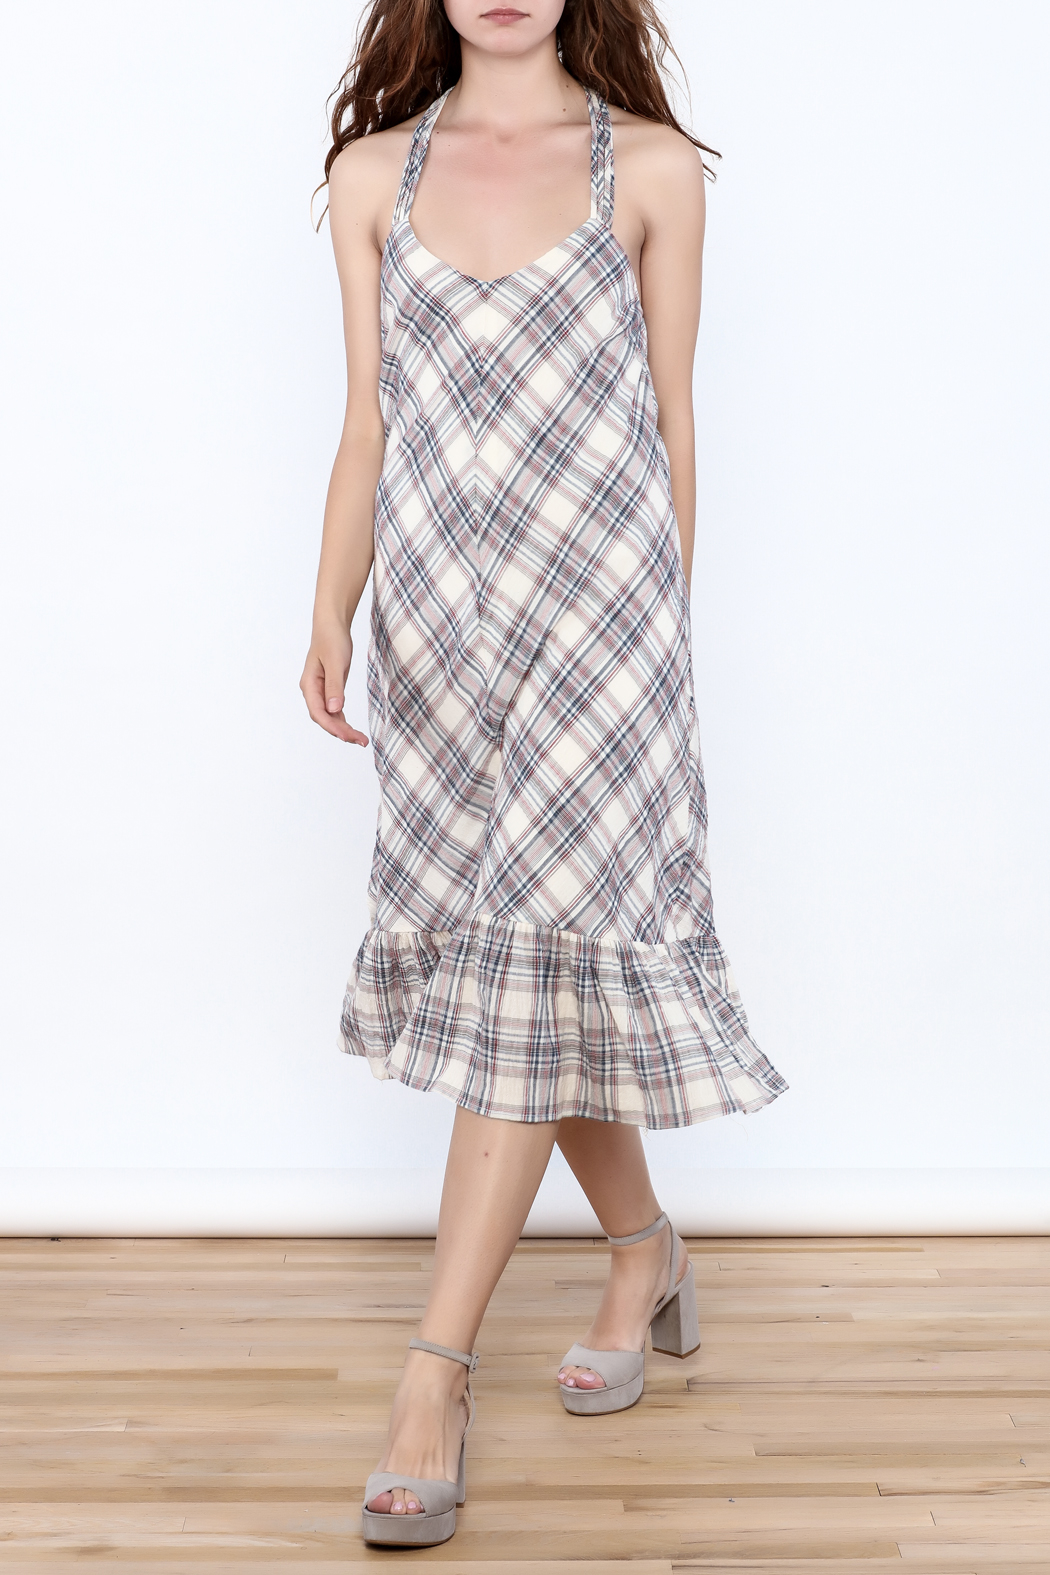 Esley Tartan Plain Dress - Main Image